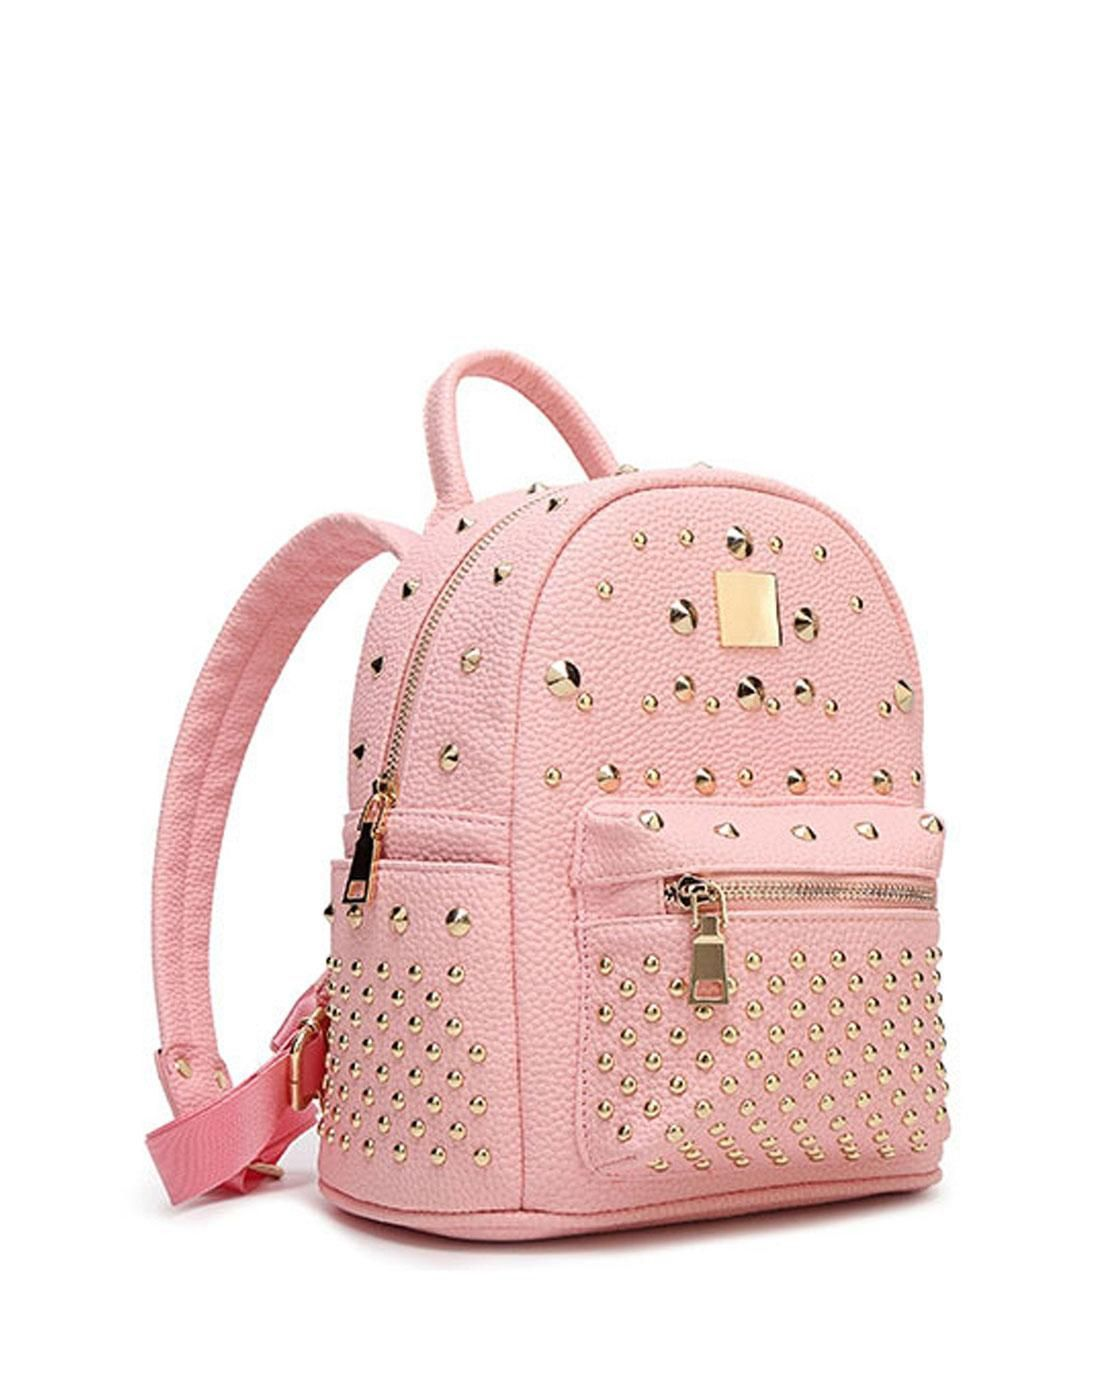 ca4981f8f662  AdoreWe  VIPme Backpacks - SVMONO Pink School Bags Backpacks for College  Girls - AdoreWe.com